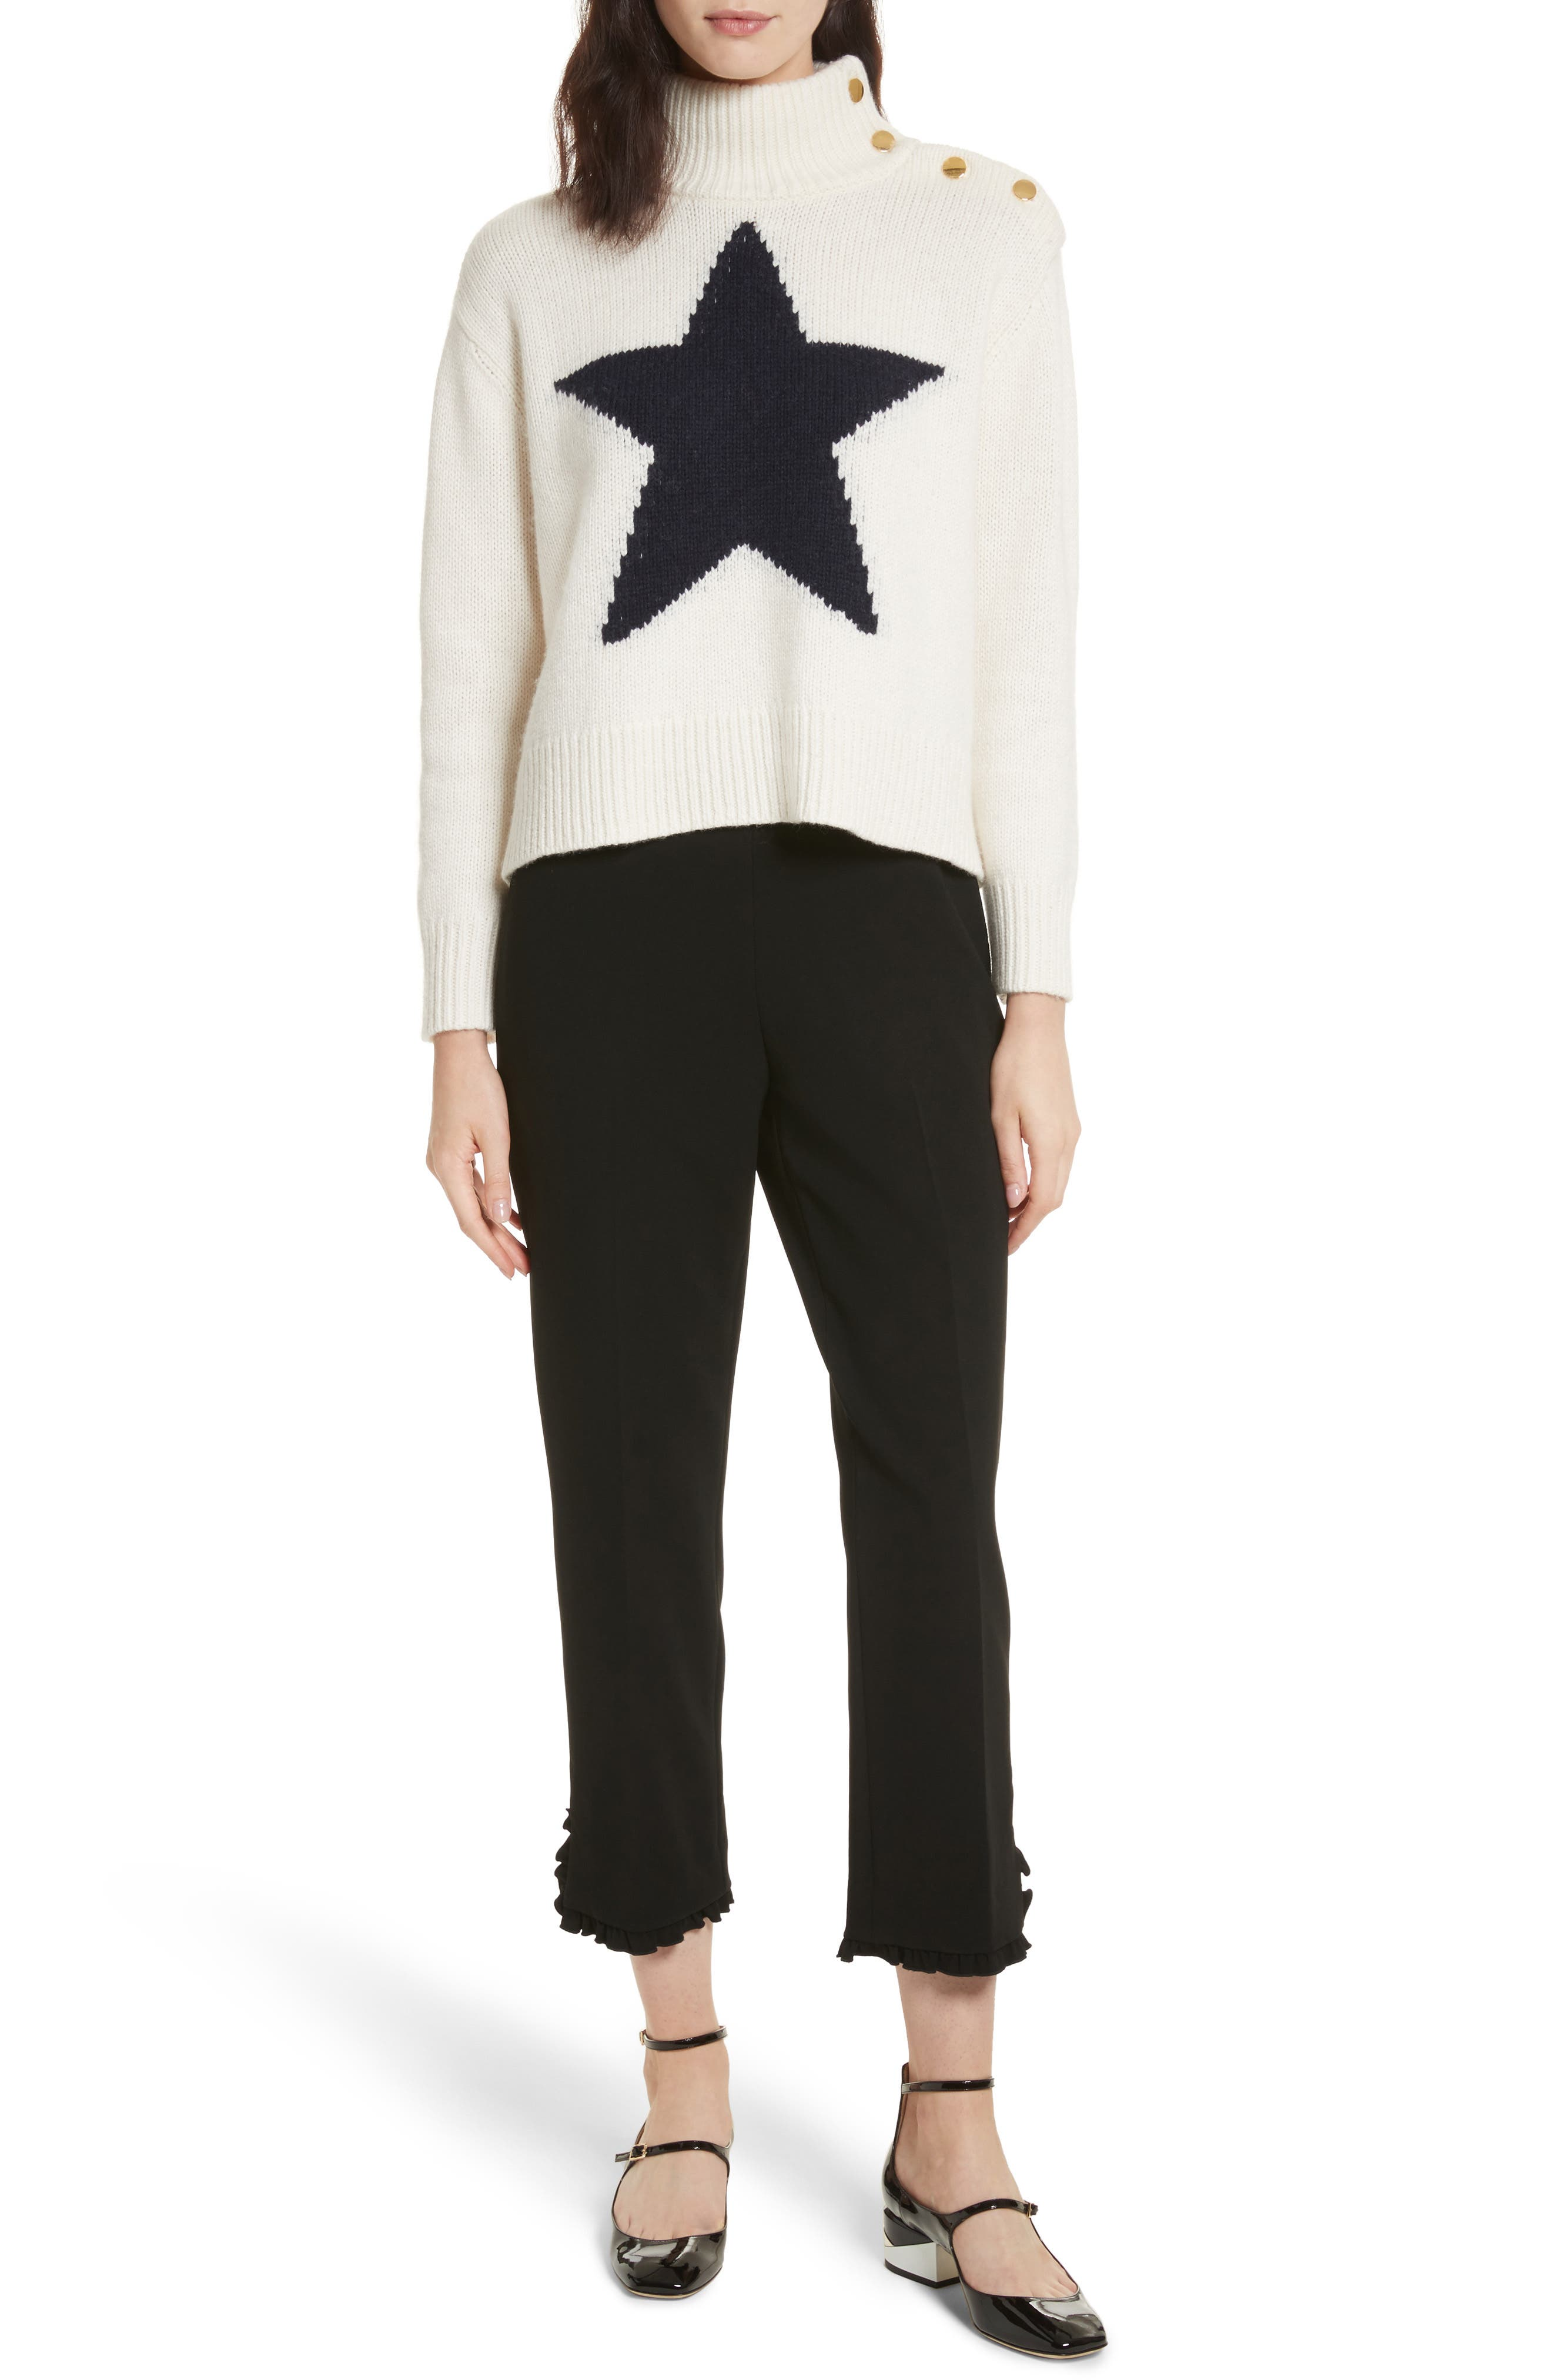 star turtleneck sweater,                             Alternate thumbnail 7, color,                             251